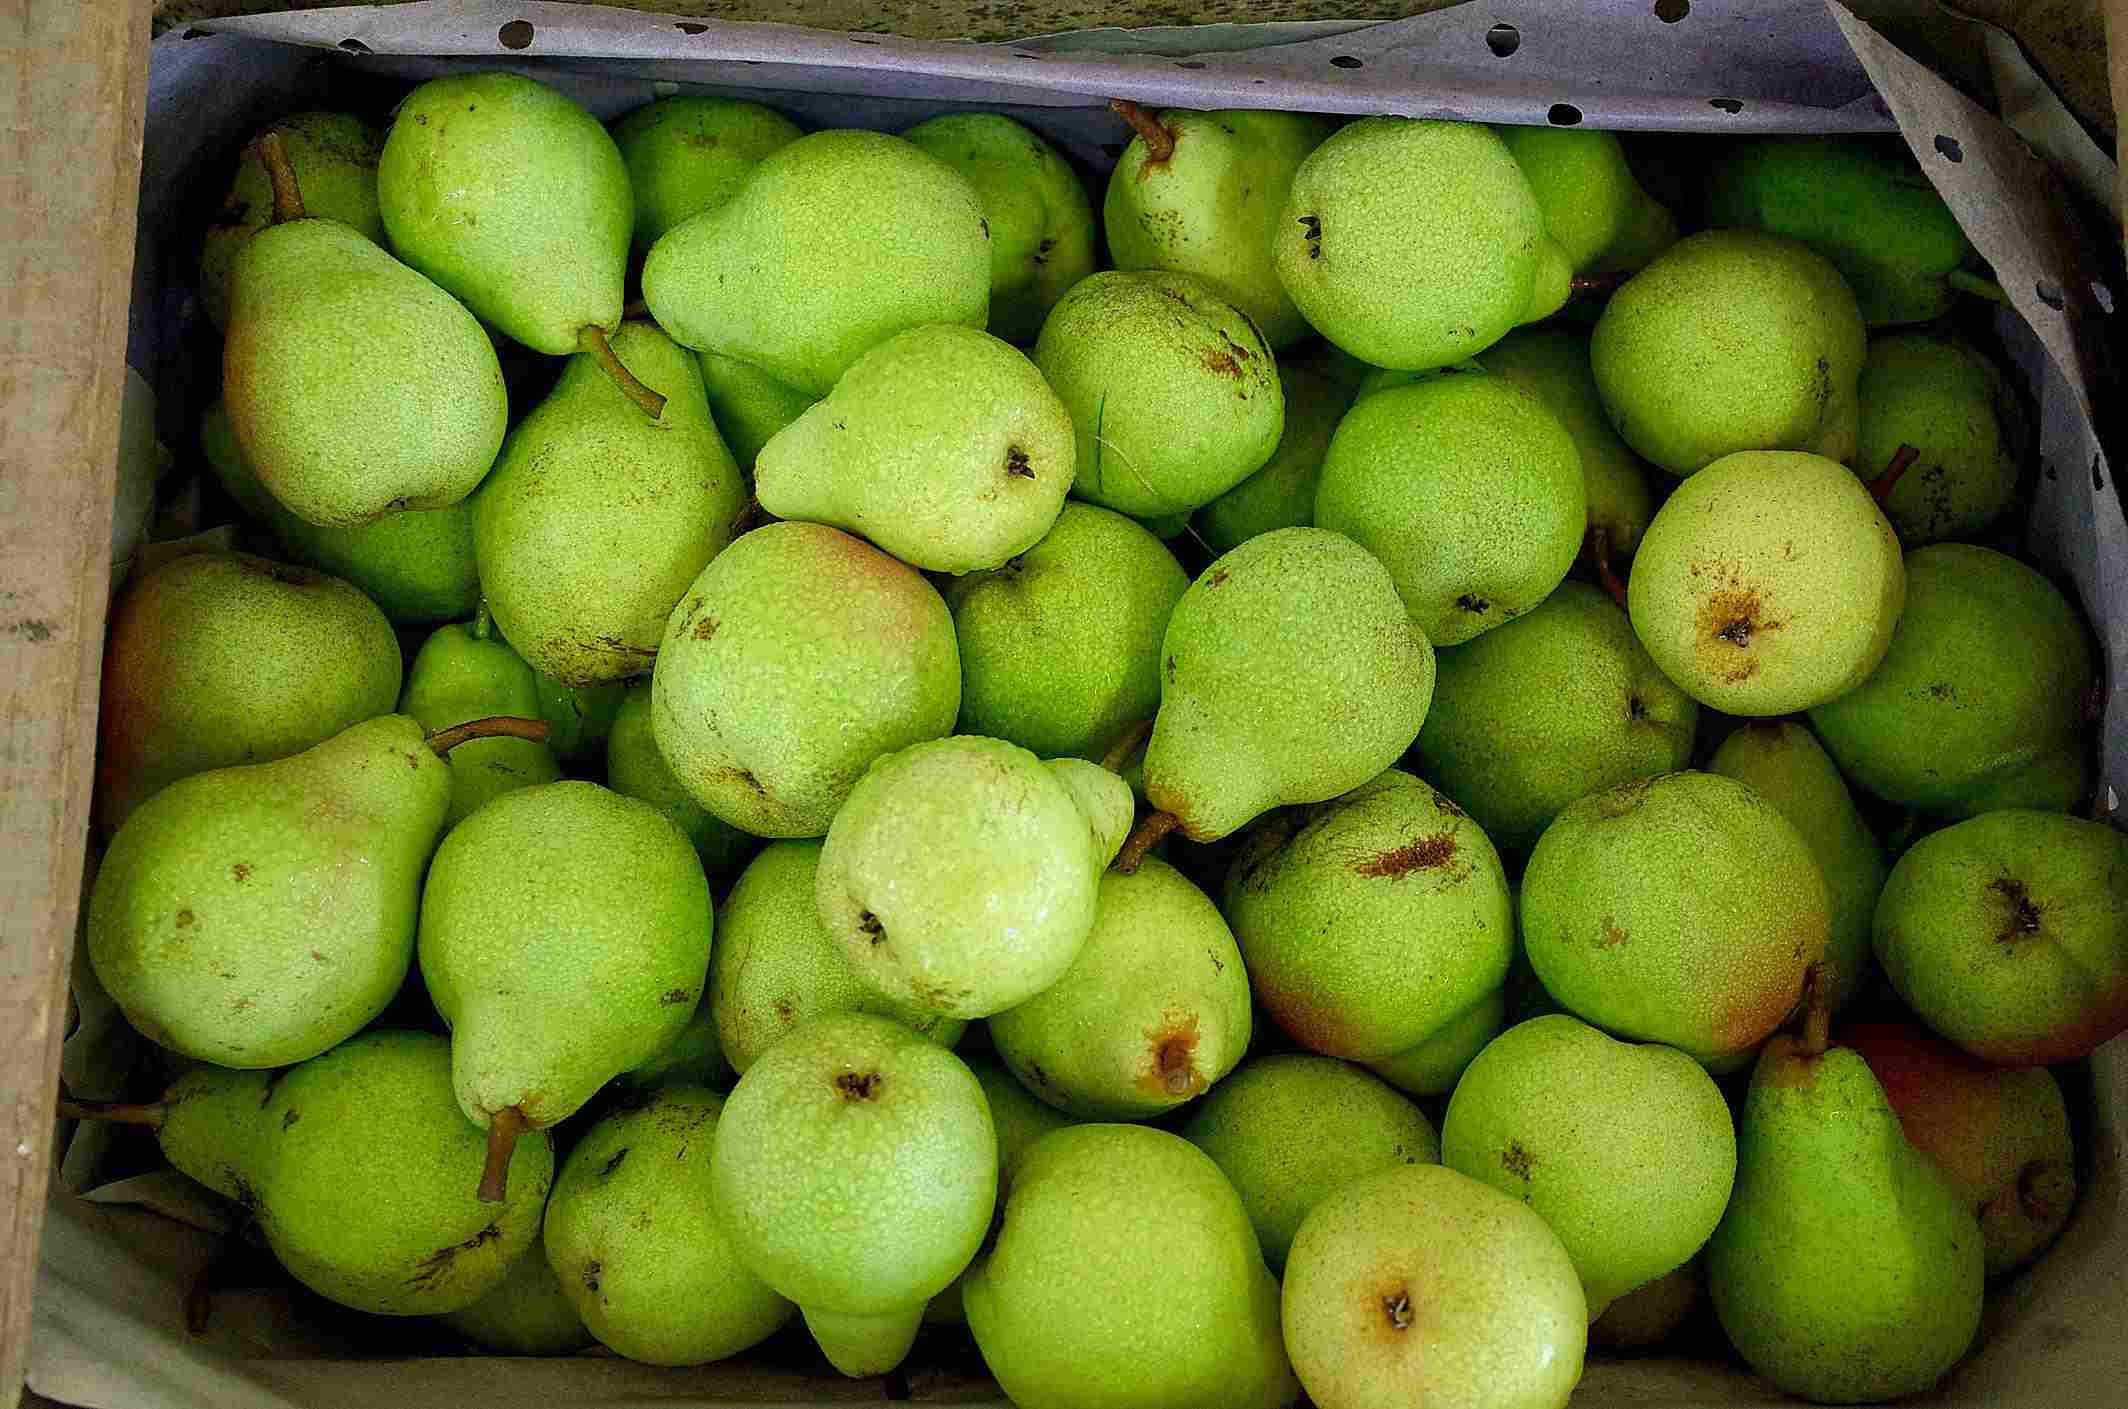 French Pears at Market